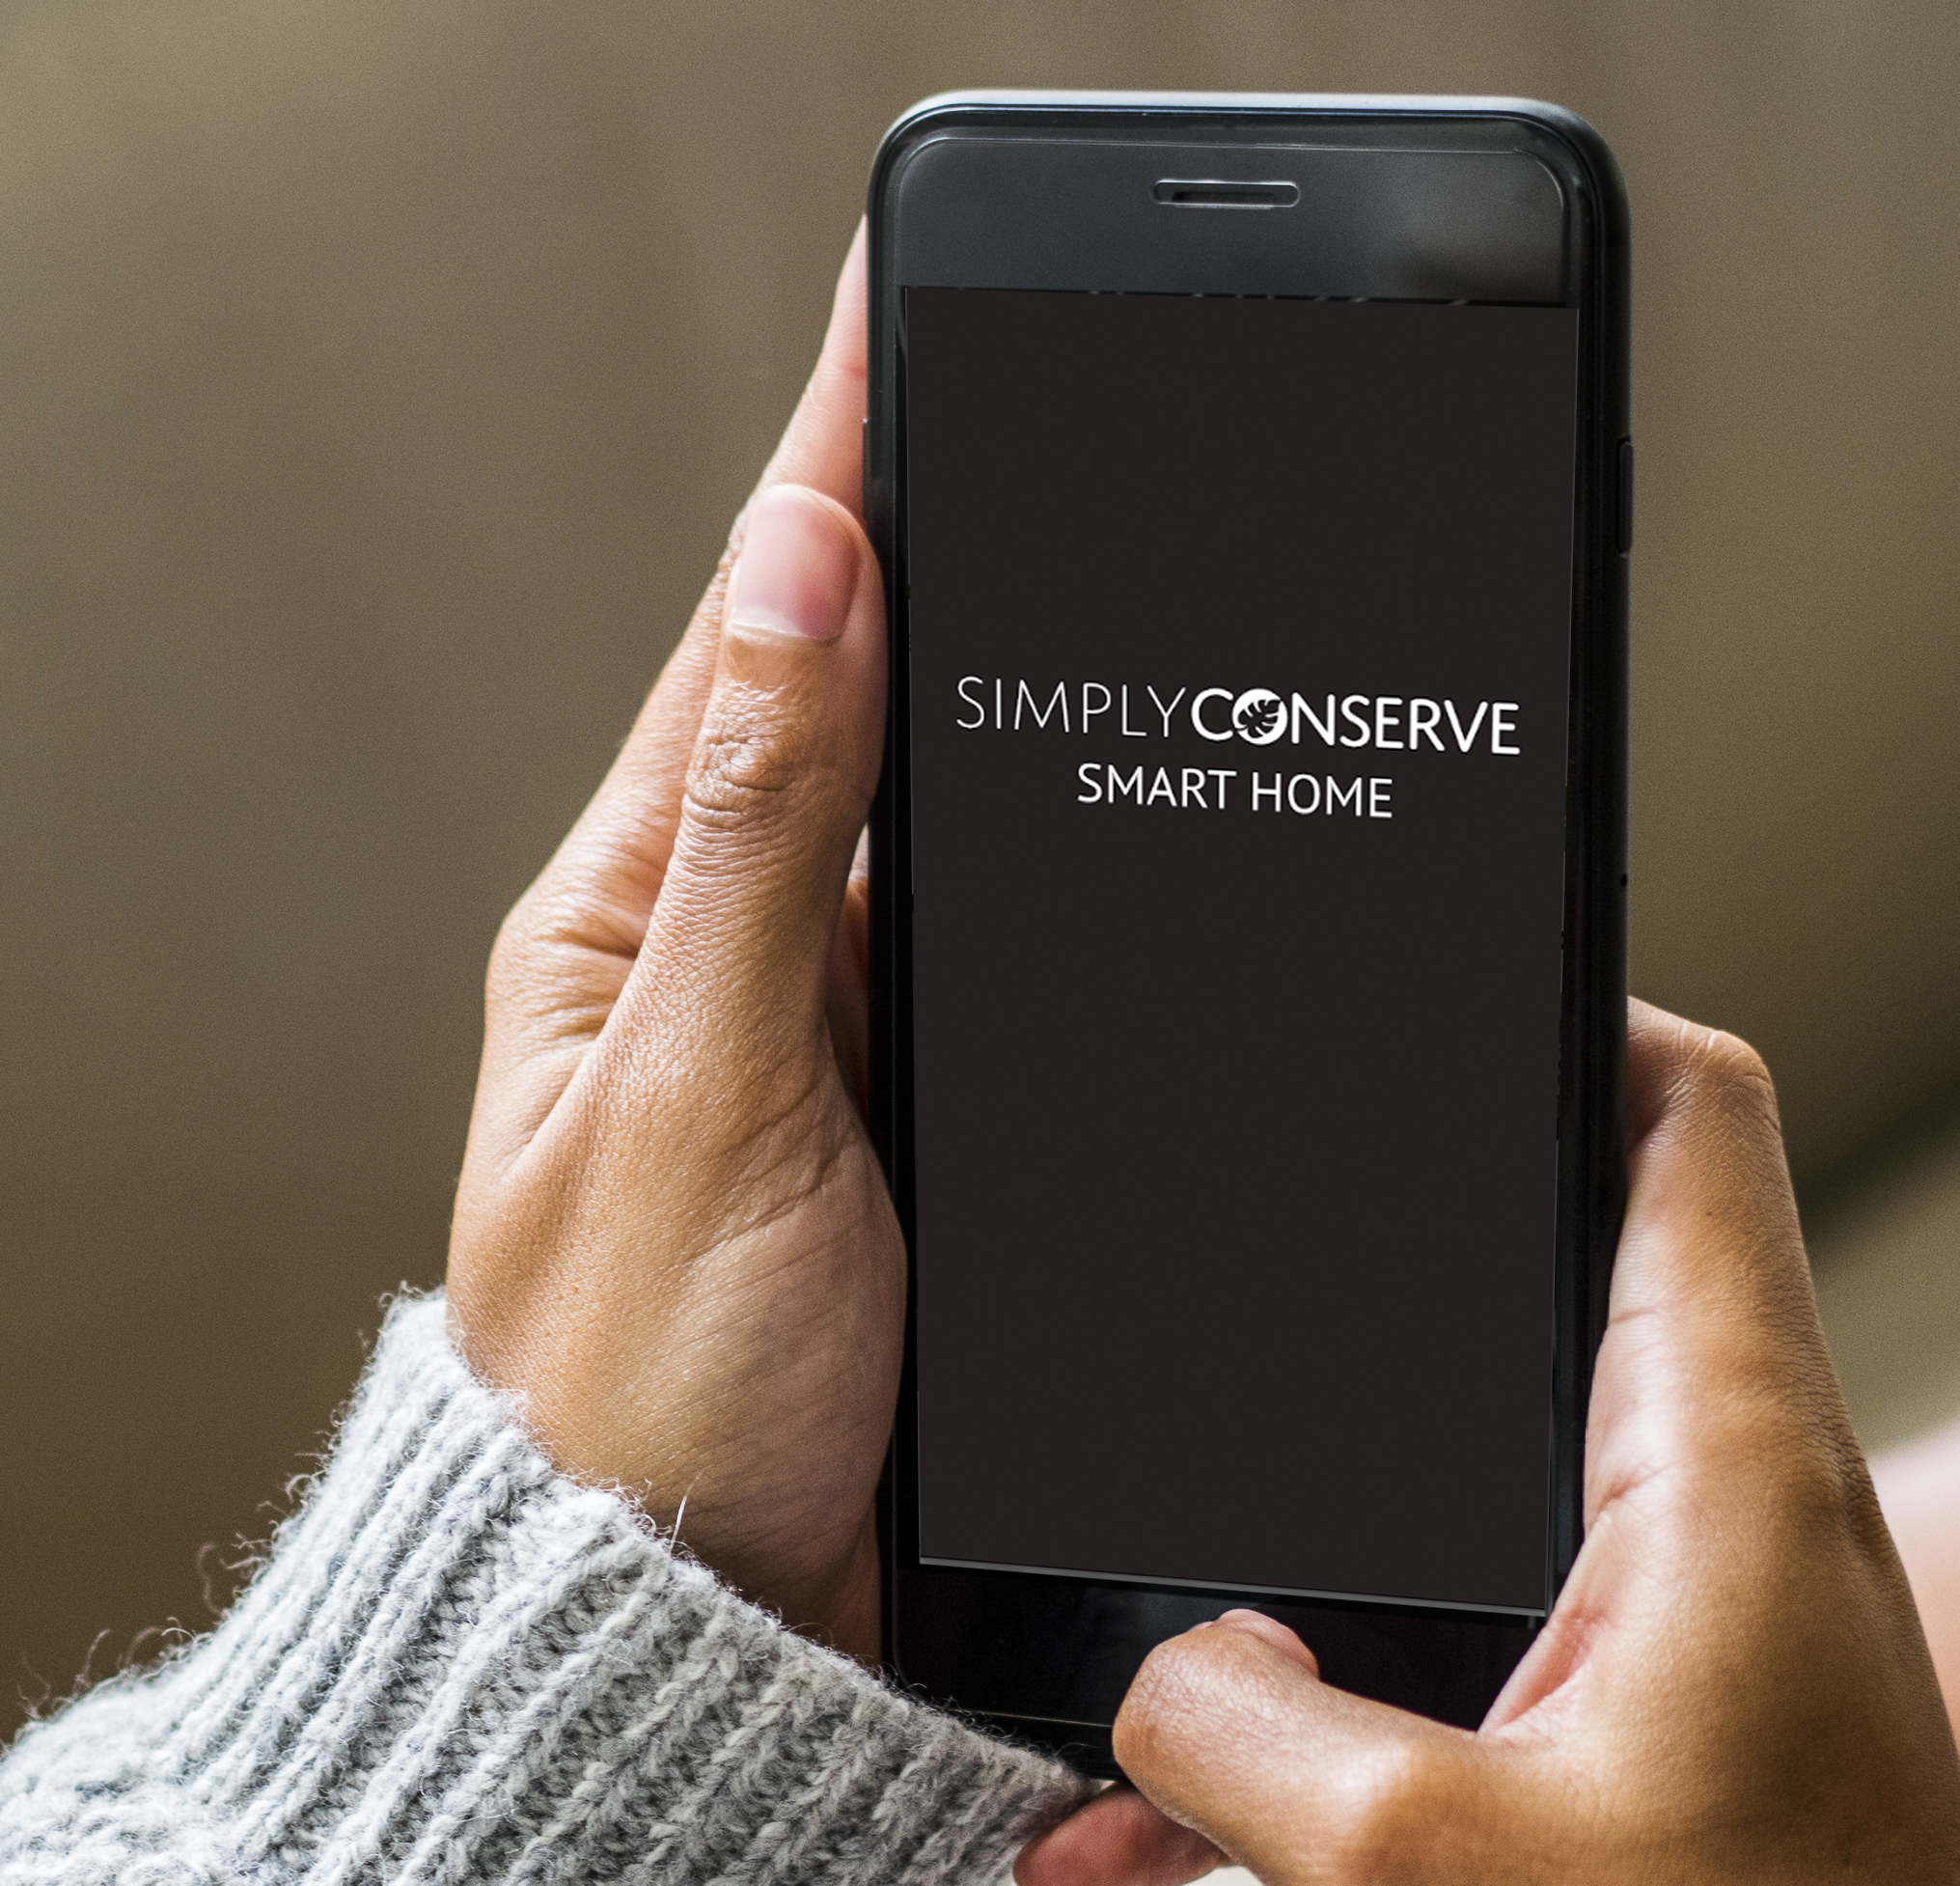 Simply Conserve app on phone